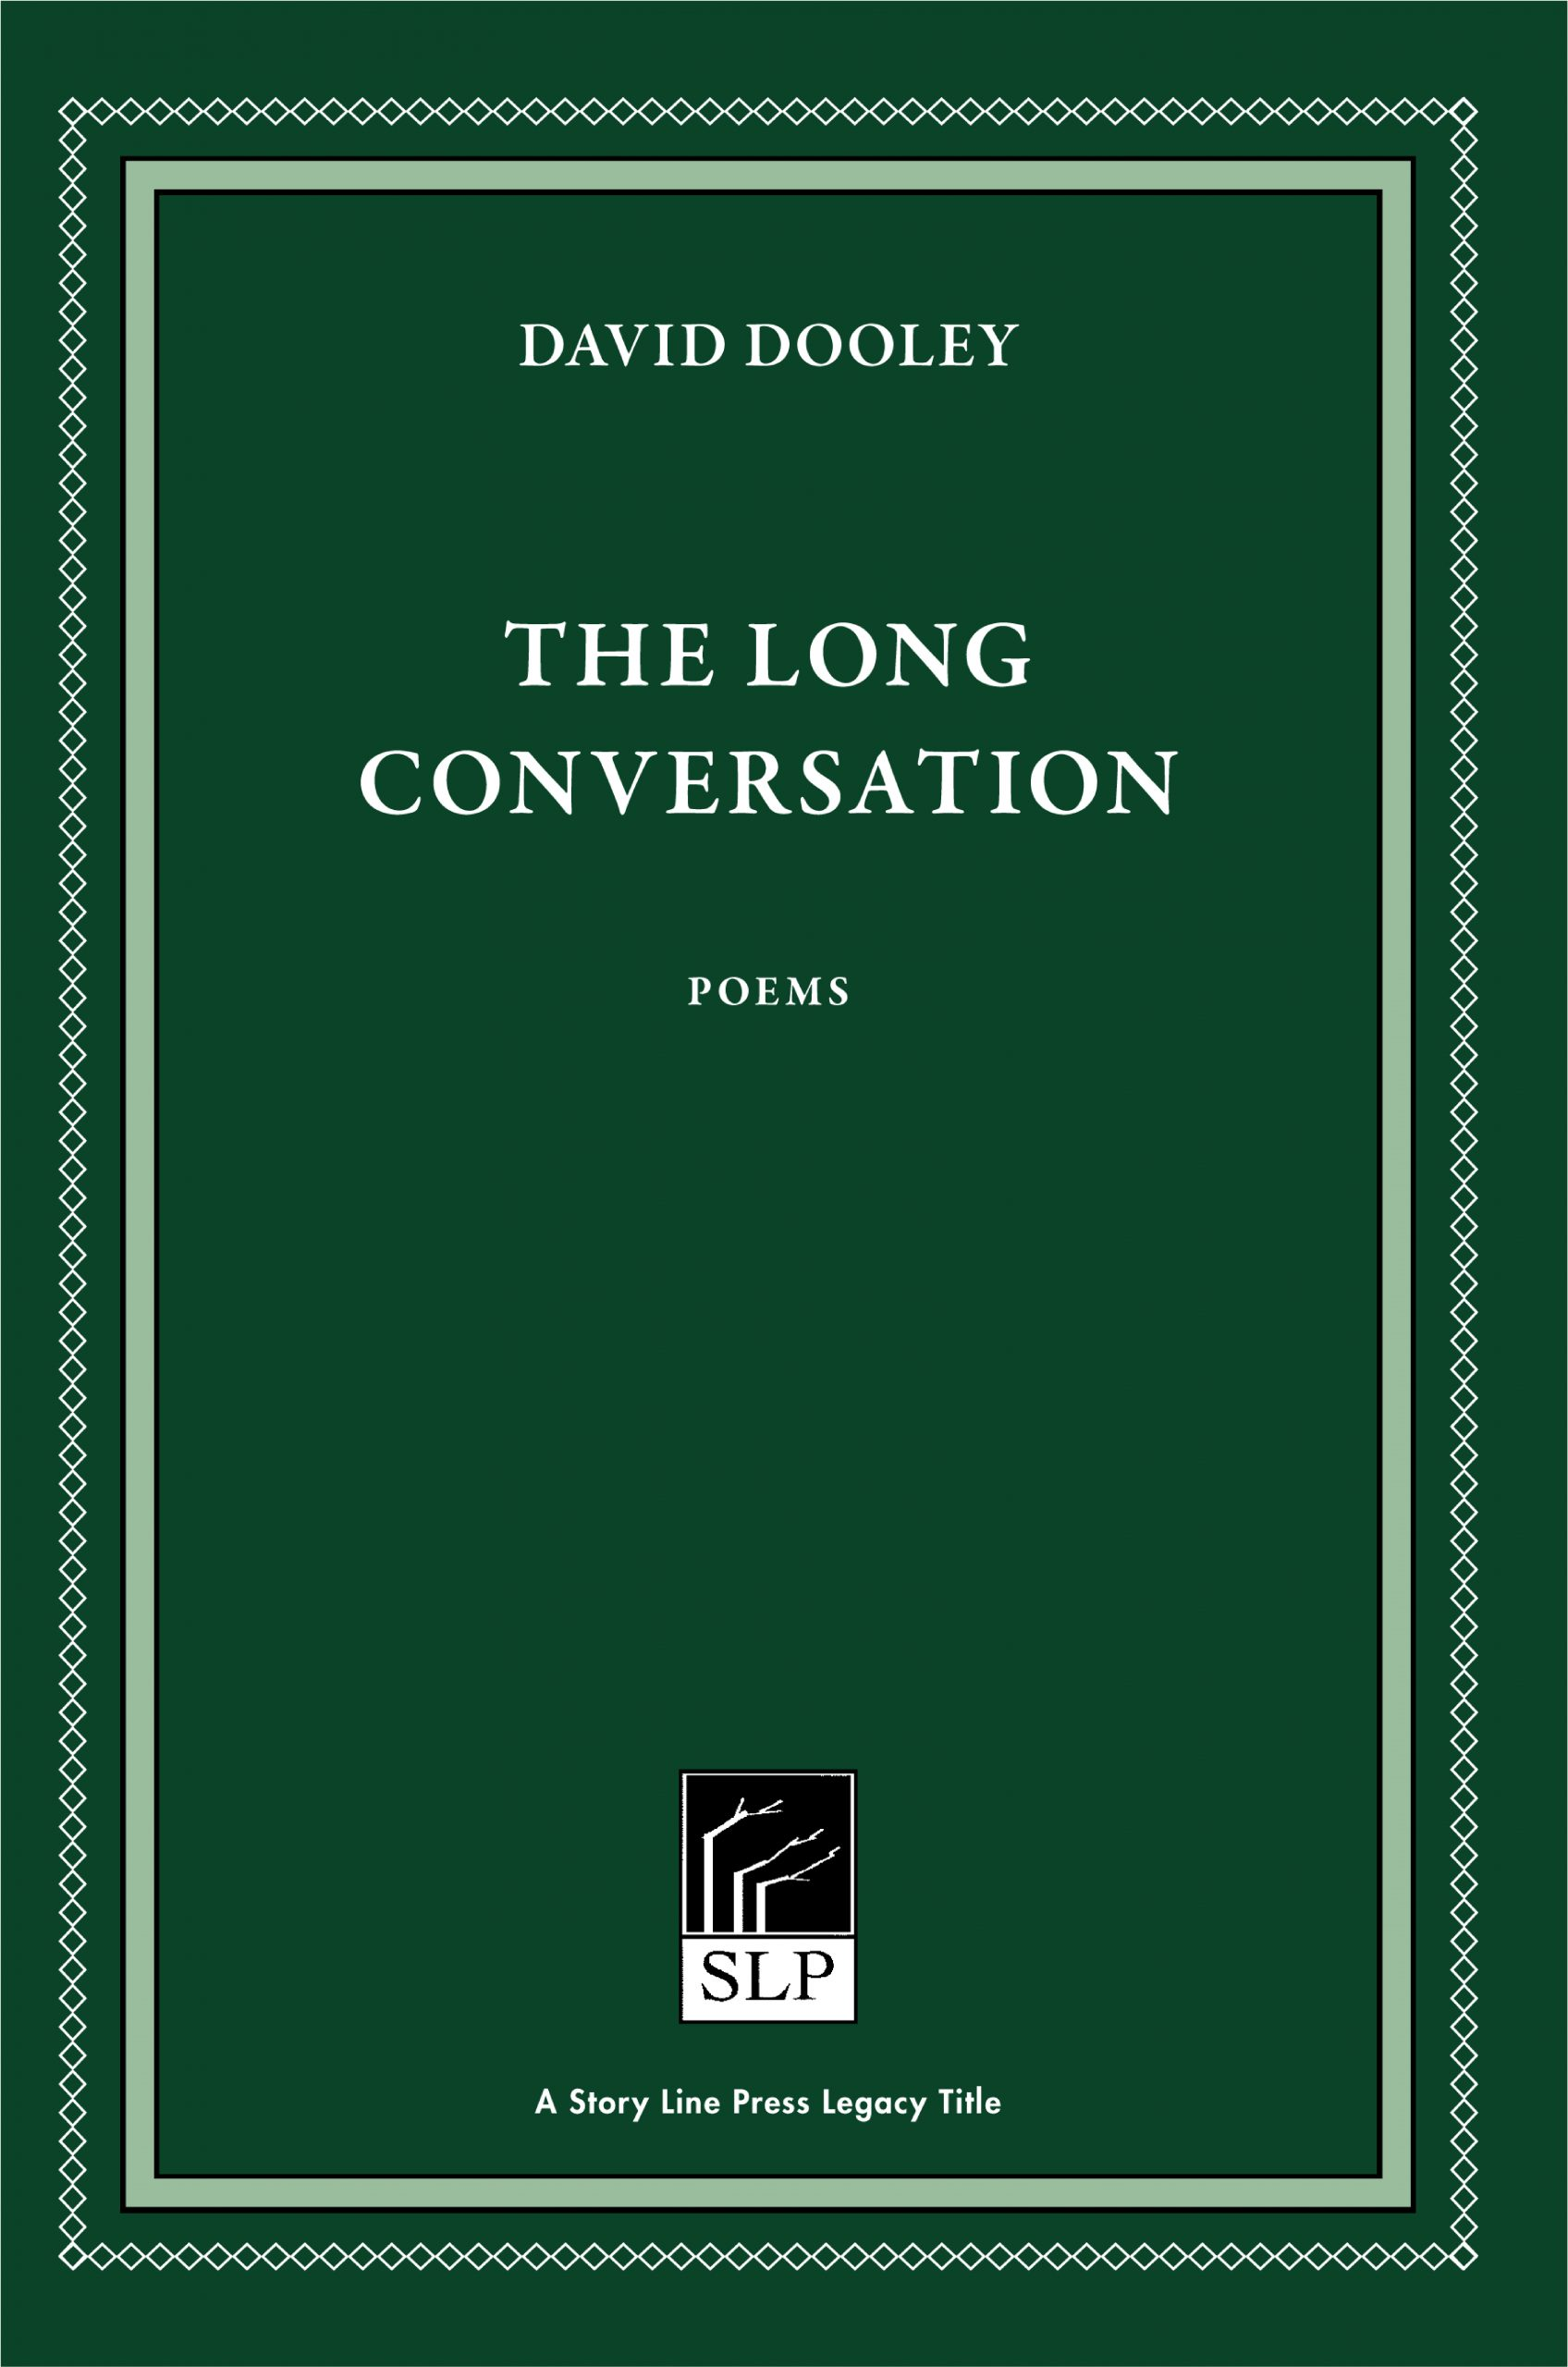 Story Line Press legacy tittle, David Dooley The Long Conversation Poems, white script text against emerald green background.